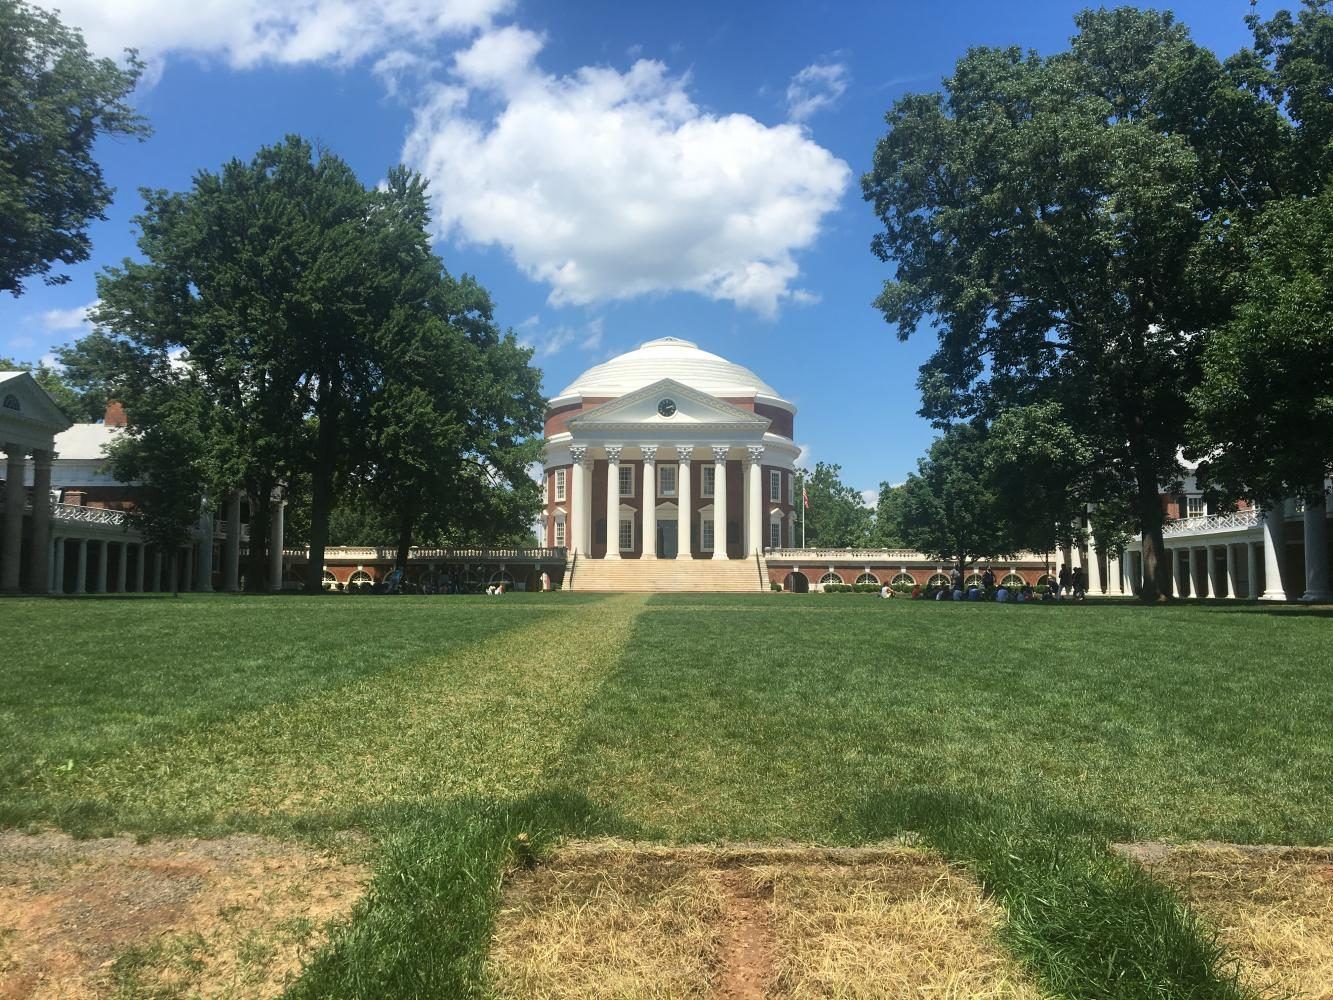 The Rotunda at the University of Virginia, focal point of the grounds.